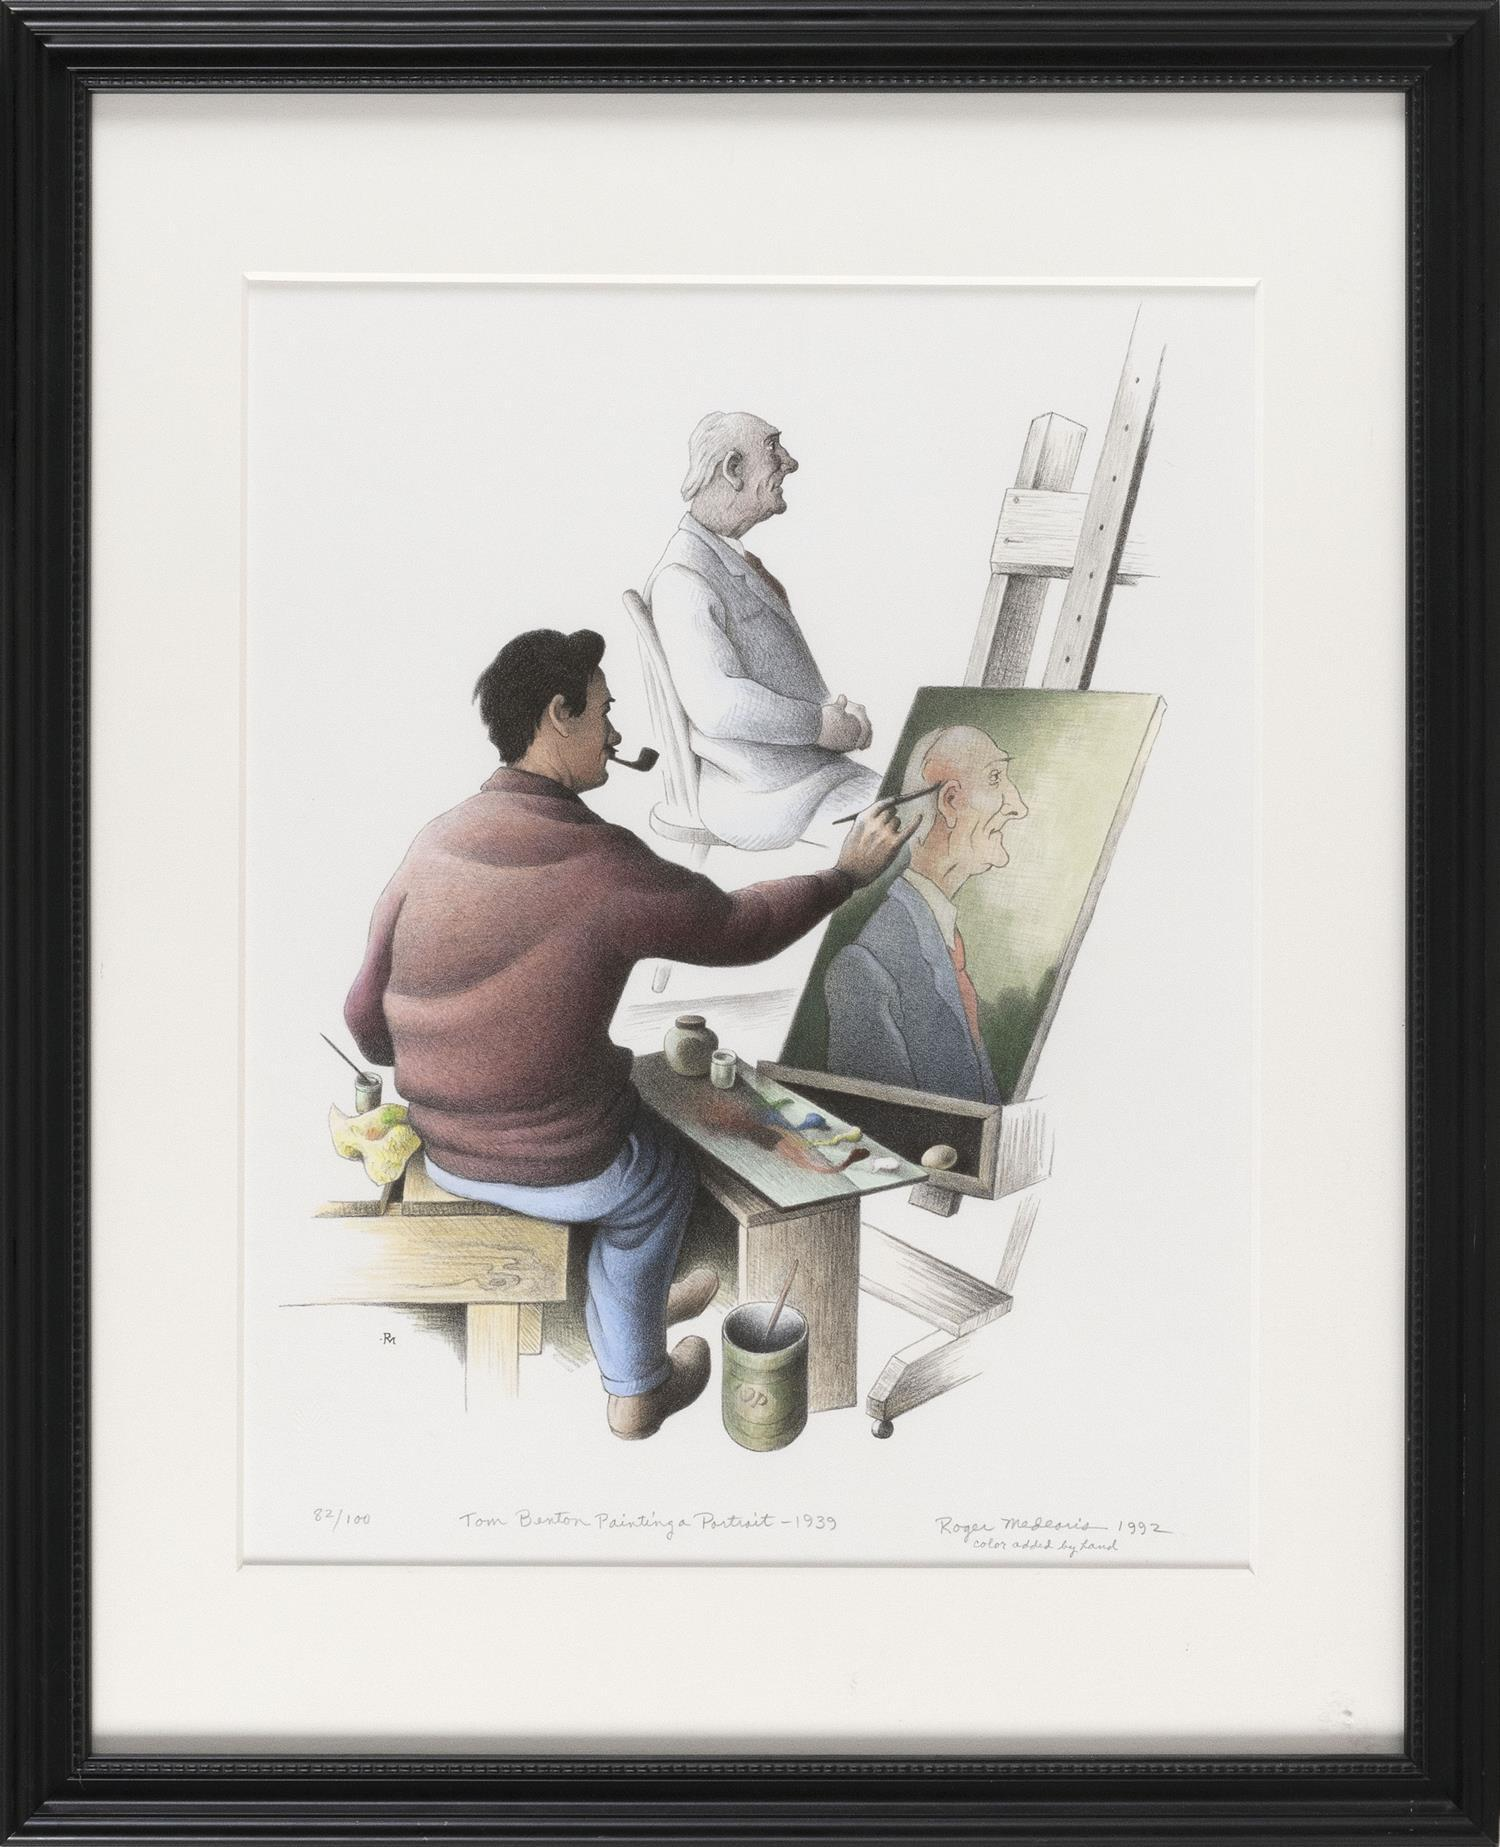 """ROGER NORMAN MEDEARIS, California/Missouri, 1920-2001, """"Tom Benton Painting a Portrait - 1939""""., Hand-touched lithograph on paper, 1..."""